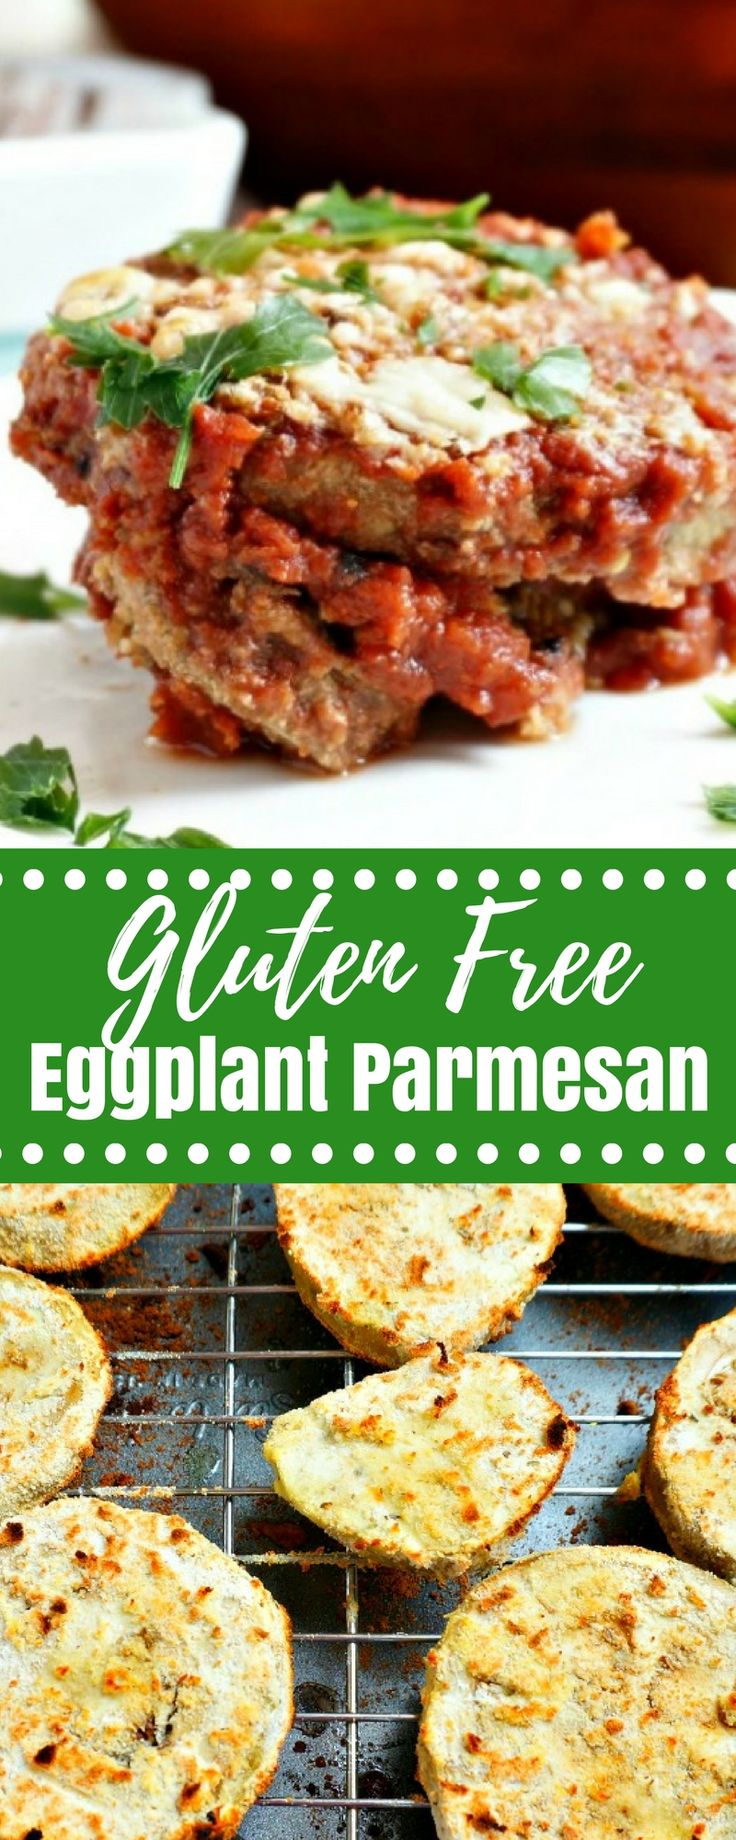 Low Carb, Gluten-Free Eggplant Parmesan: An incredibly rich, luxorious, and comforting classic made completely gluten-free and Specific Carbohydrate Diet Approved. #glutenfree #lowcarb #keto #meatless via @amindfullmom